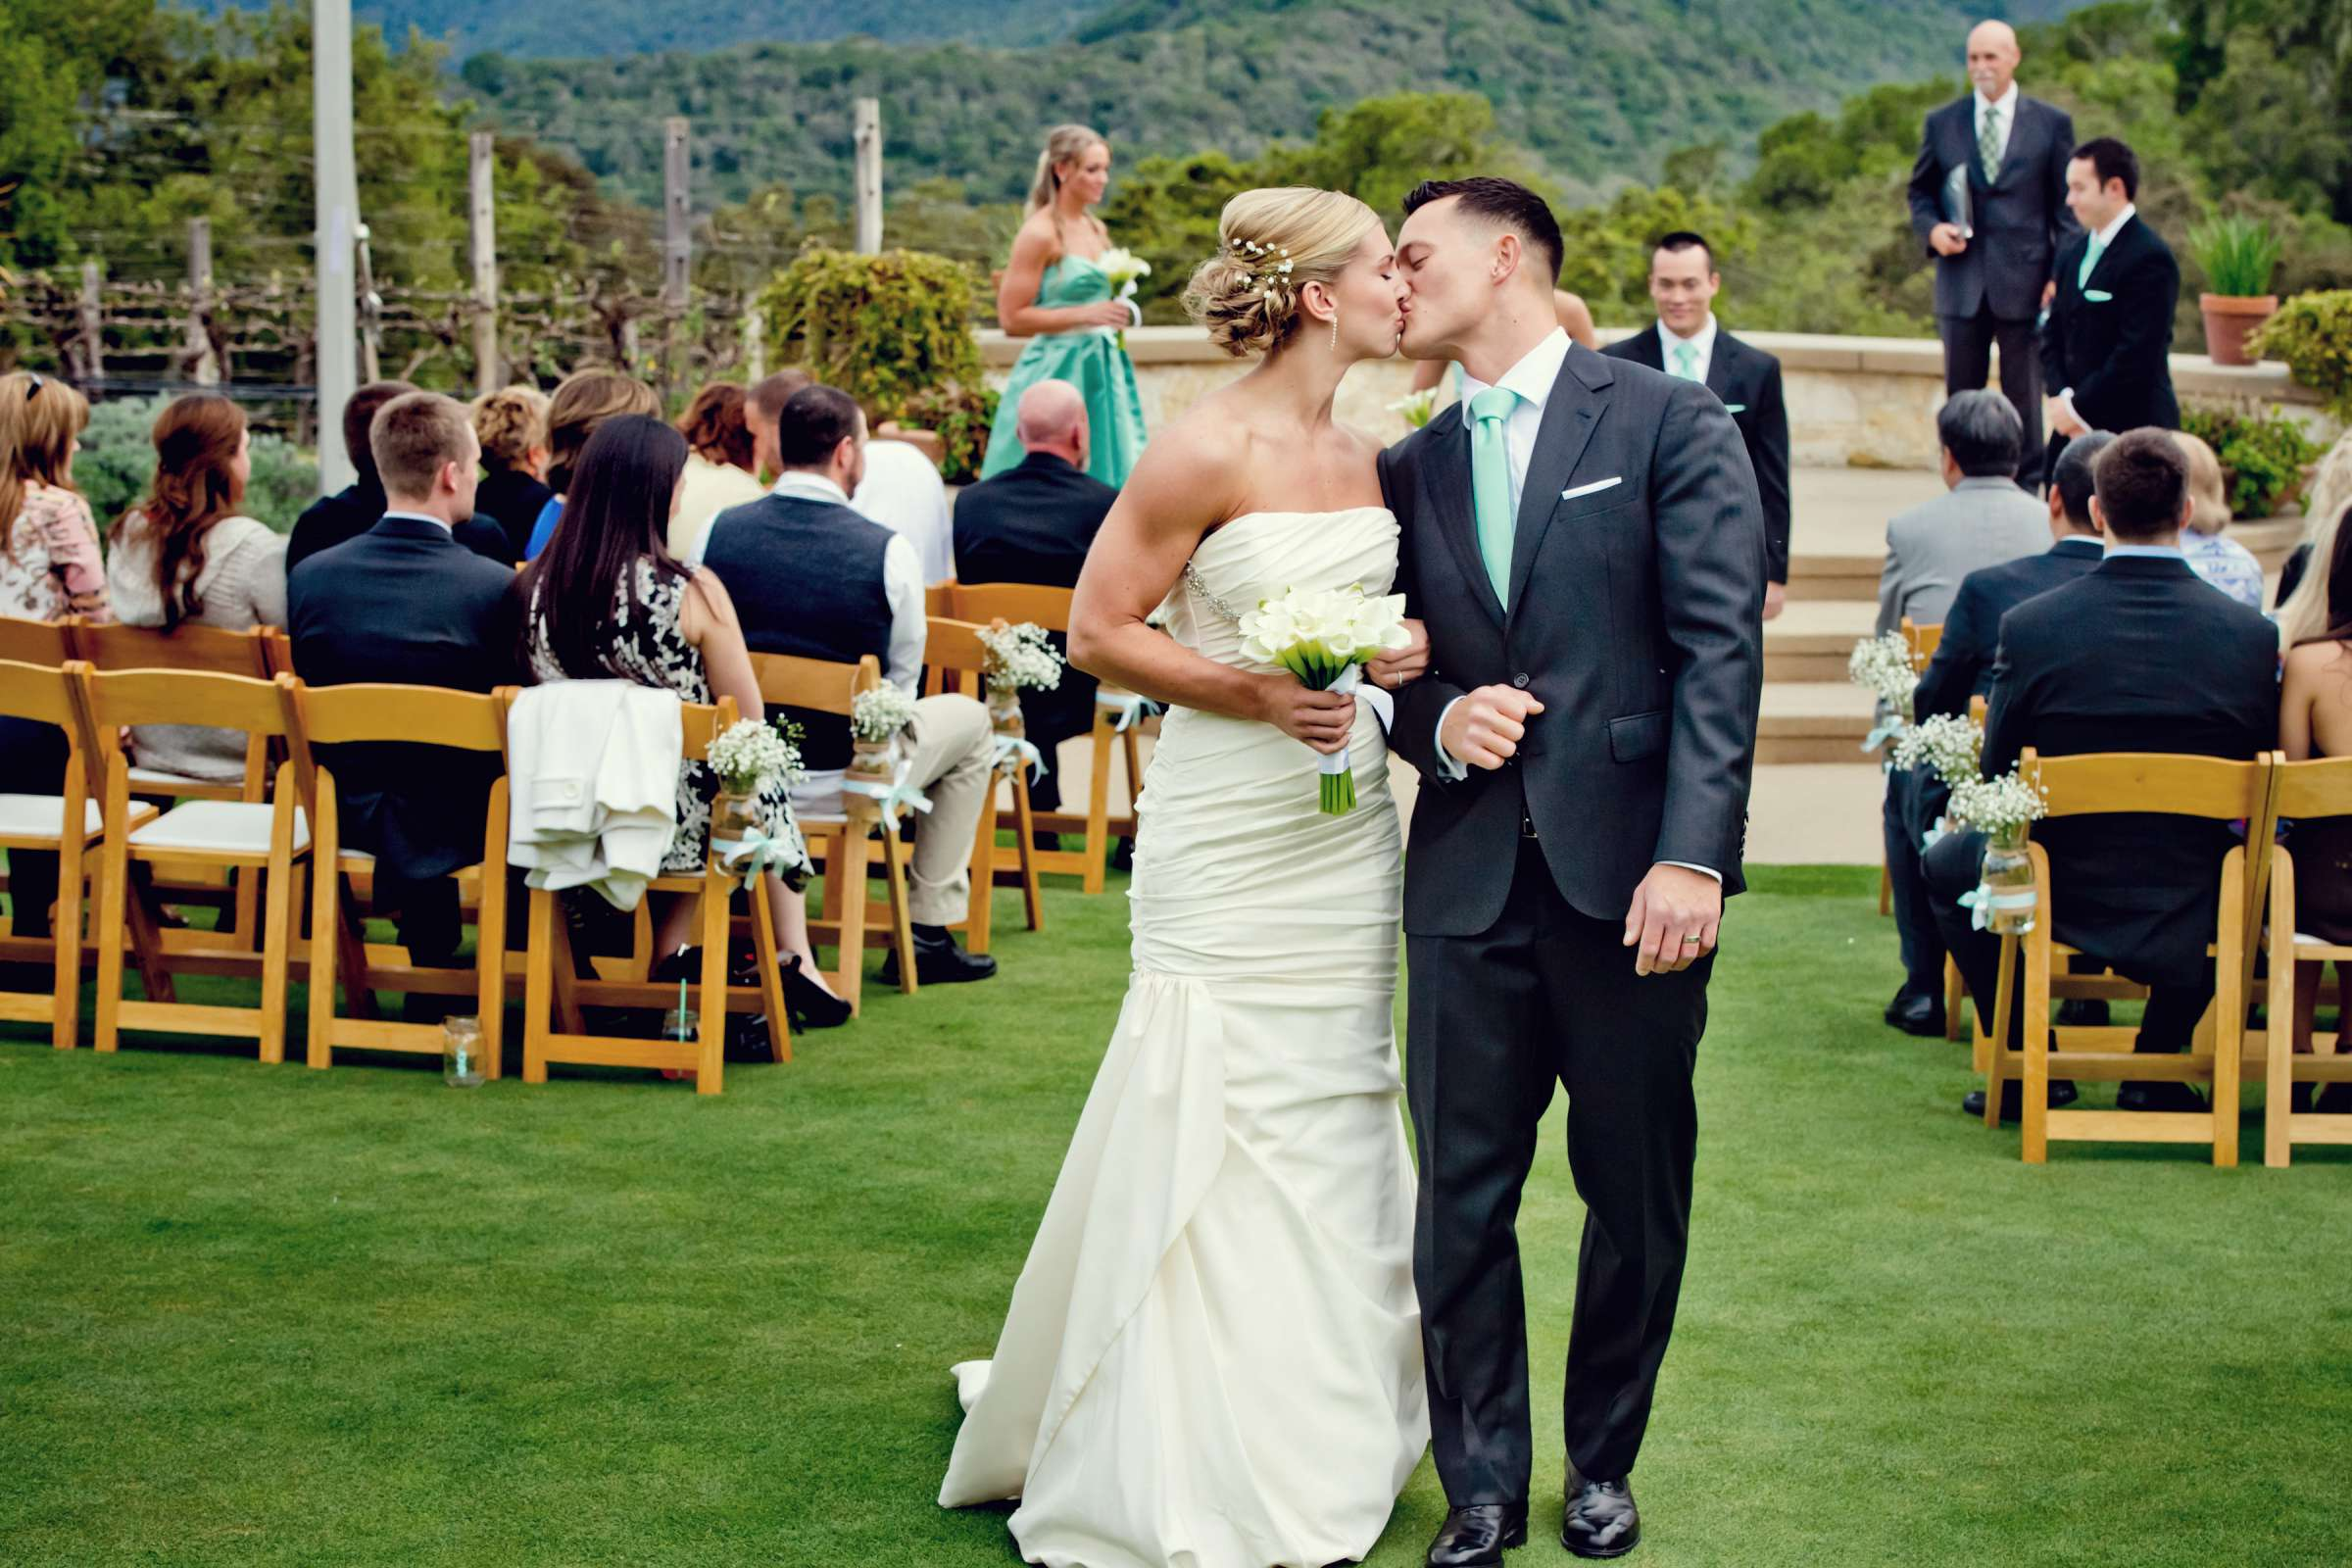 Holman Ranch Wedding, Kaley and Jason Wedding Photo #356258 by True Photography